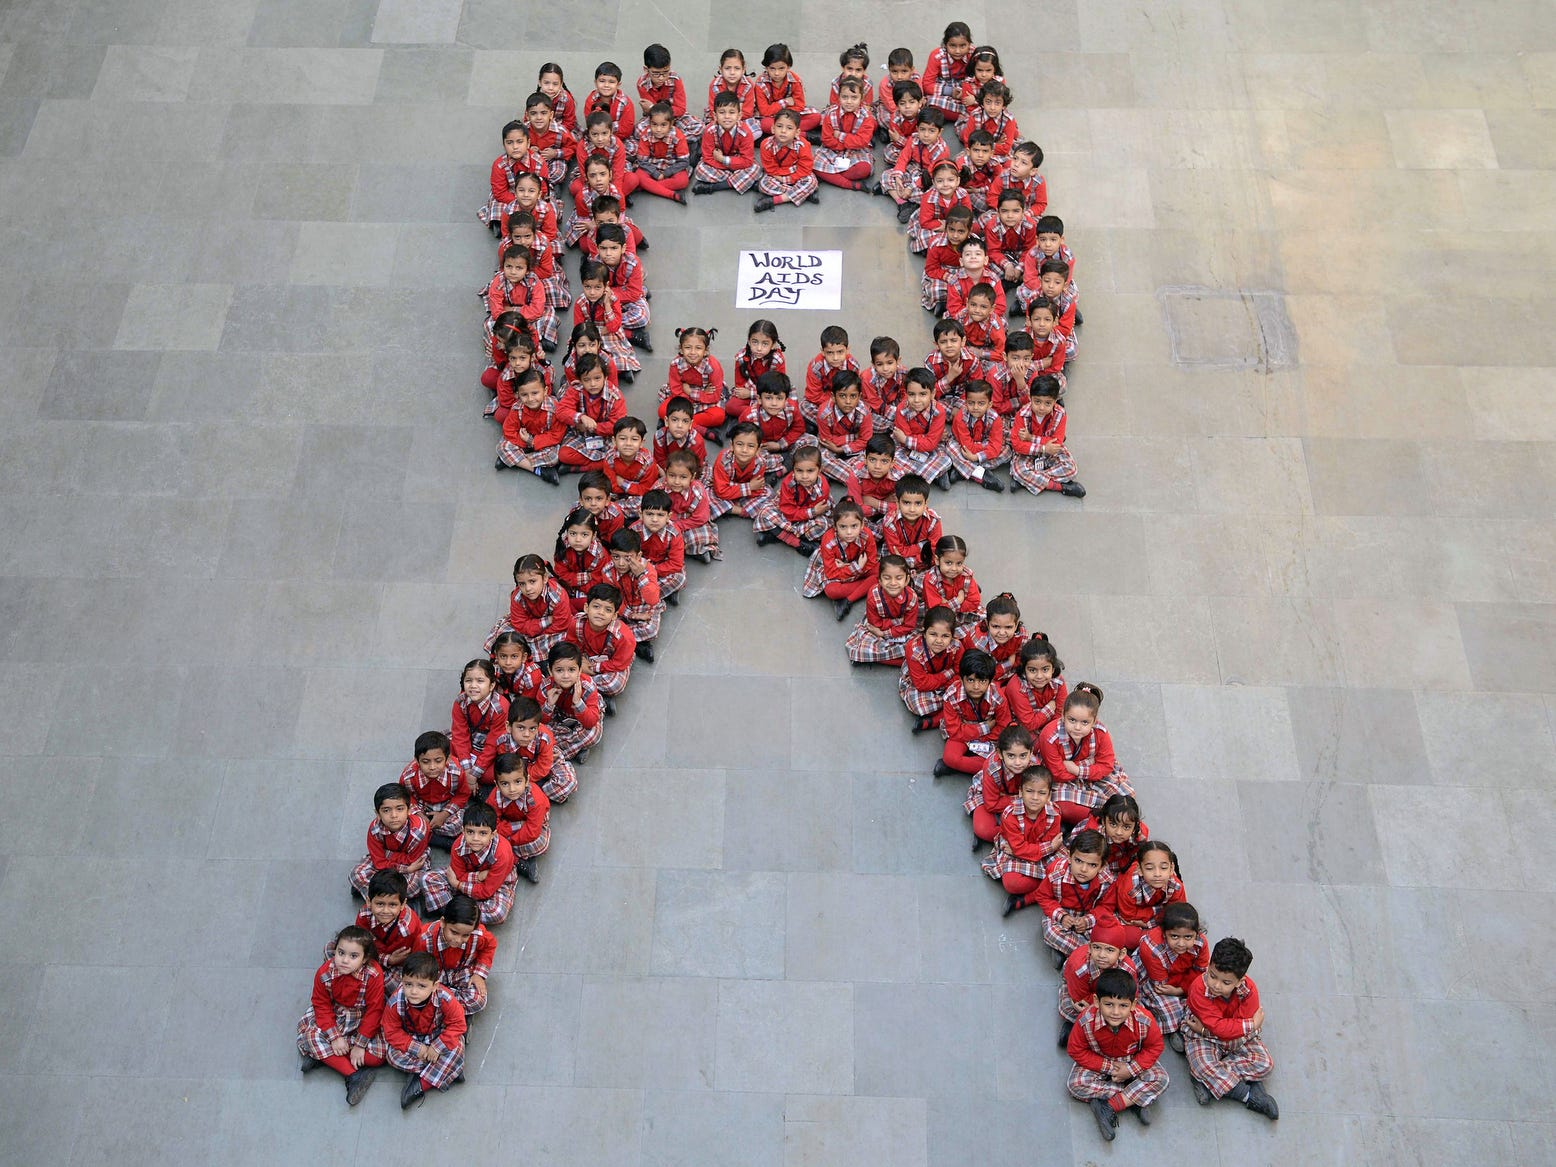 Indian school students pose for a photograph as they sit in the shape of a ribbon on the eve of World AIDS Day in Amritsar. World AIDS Day has been observed on Dec. 1 since 1988 to raise awareness of the AIDS pandemic. Click ahead to view World AIDS Day through the years.